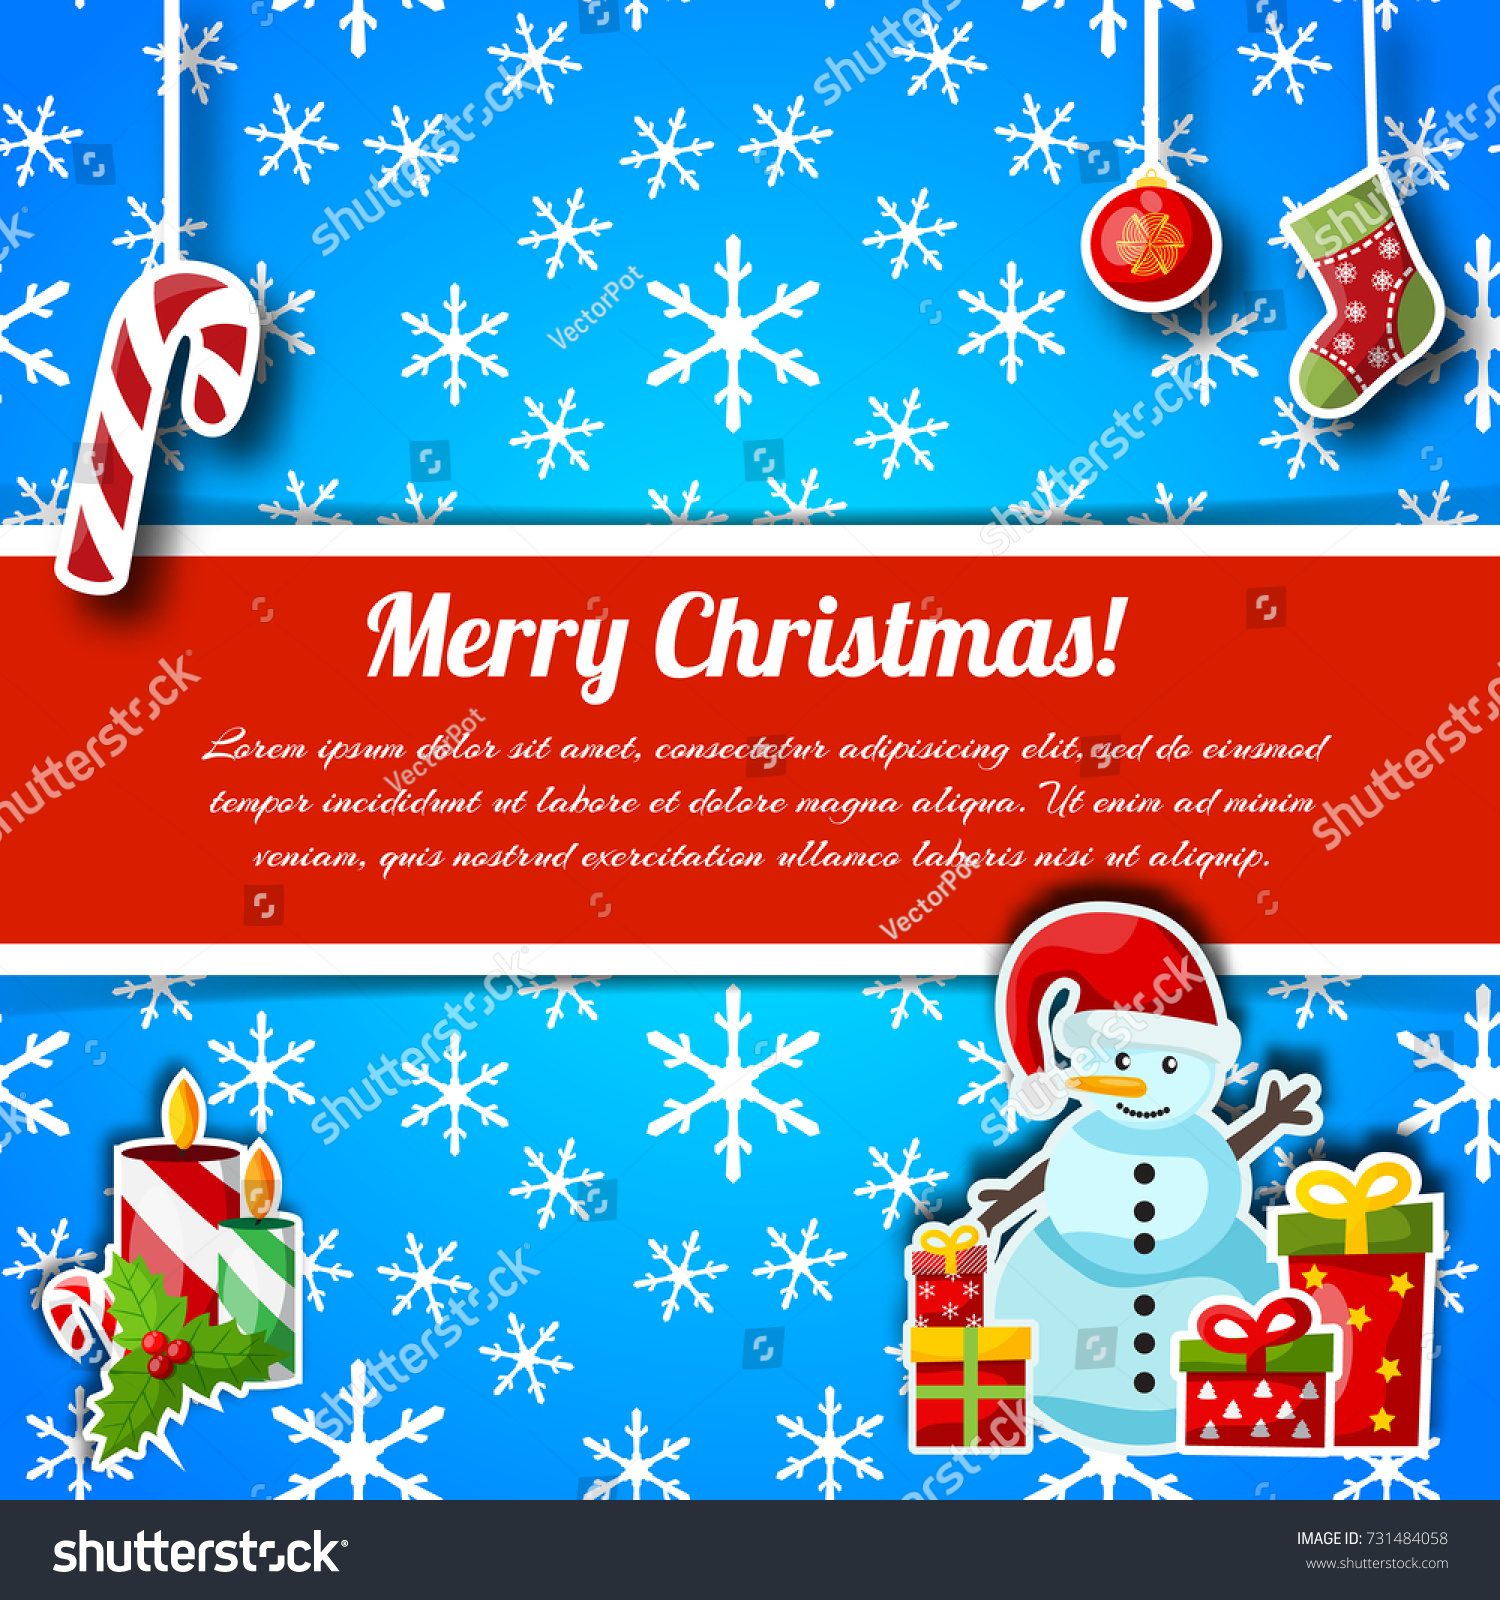 Christmas Greetings Typography Design Postcard Wishes Stock Vector